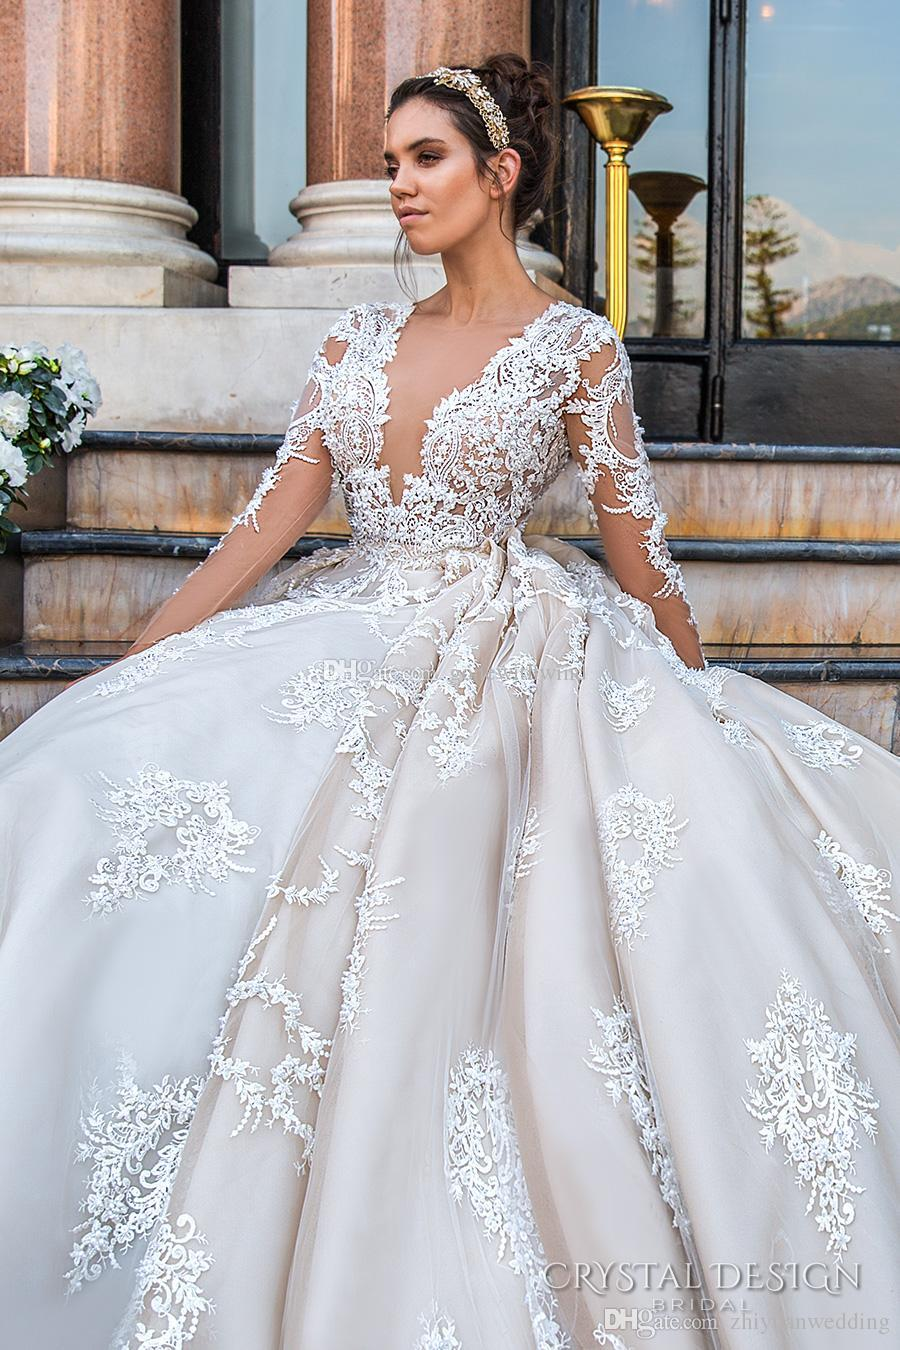 Discount Keyhole Back Monarch Train Princess Wedding Dresses 2017 Crystal  Design Bridal Long Sleeves Plunging V Neck Sexy Ball Gown A Line Wedding  Wedding  Discount Keyhole Back Monarch Train Princess Wedding Dresses 2017  . A Line Princess Wedding Dresses. Home Design Ideas